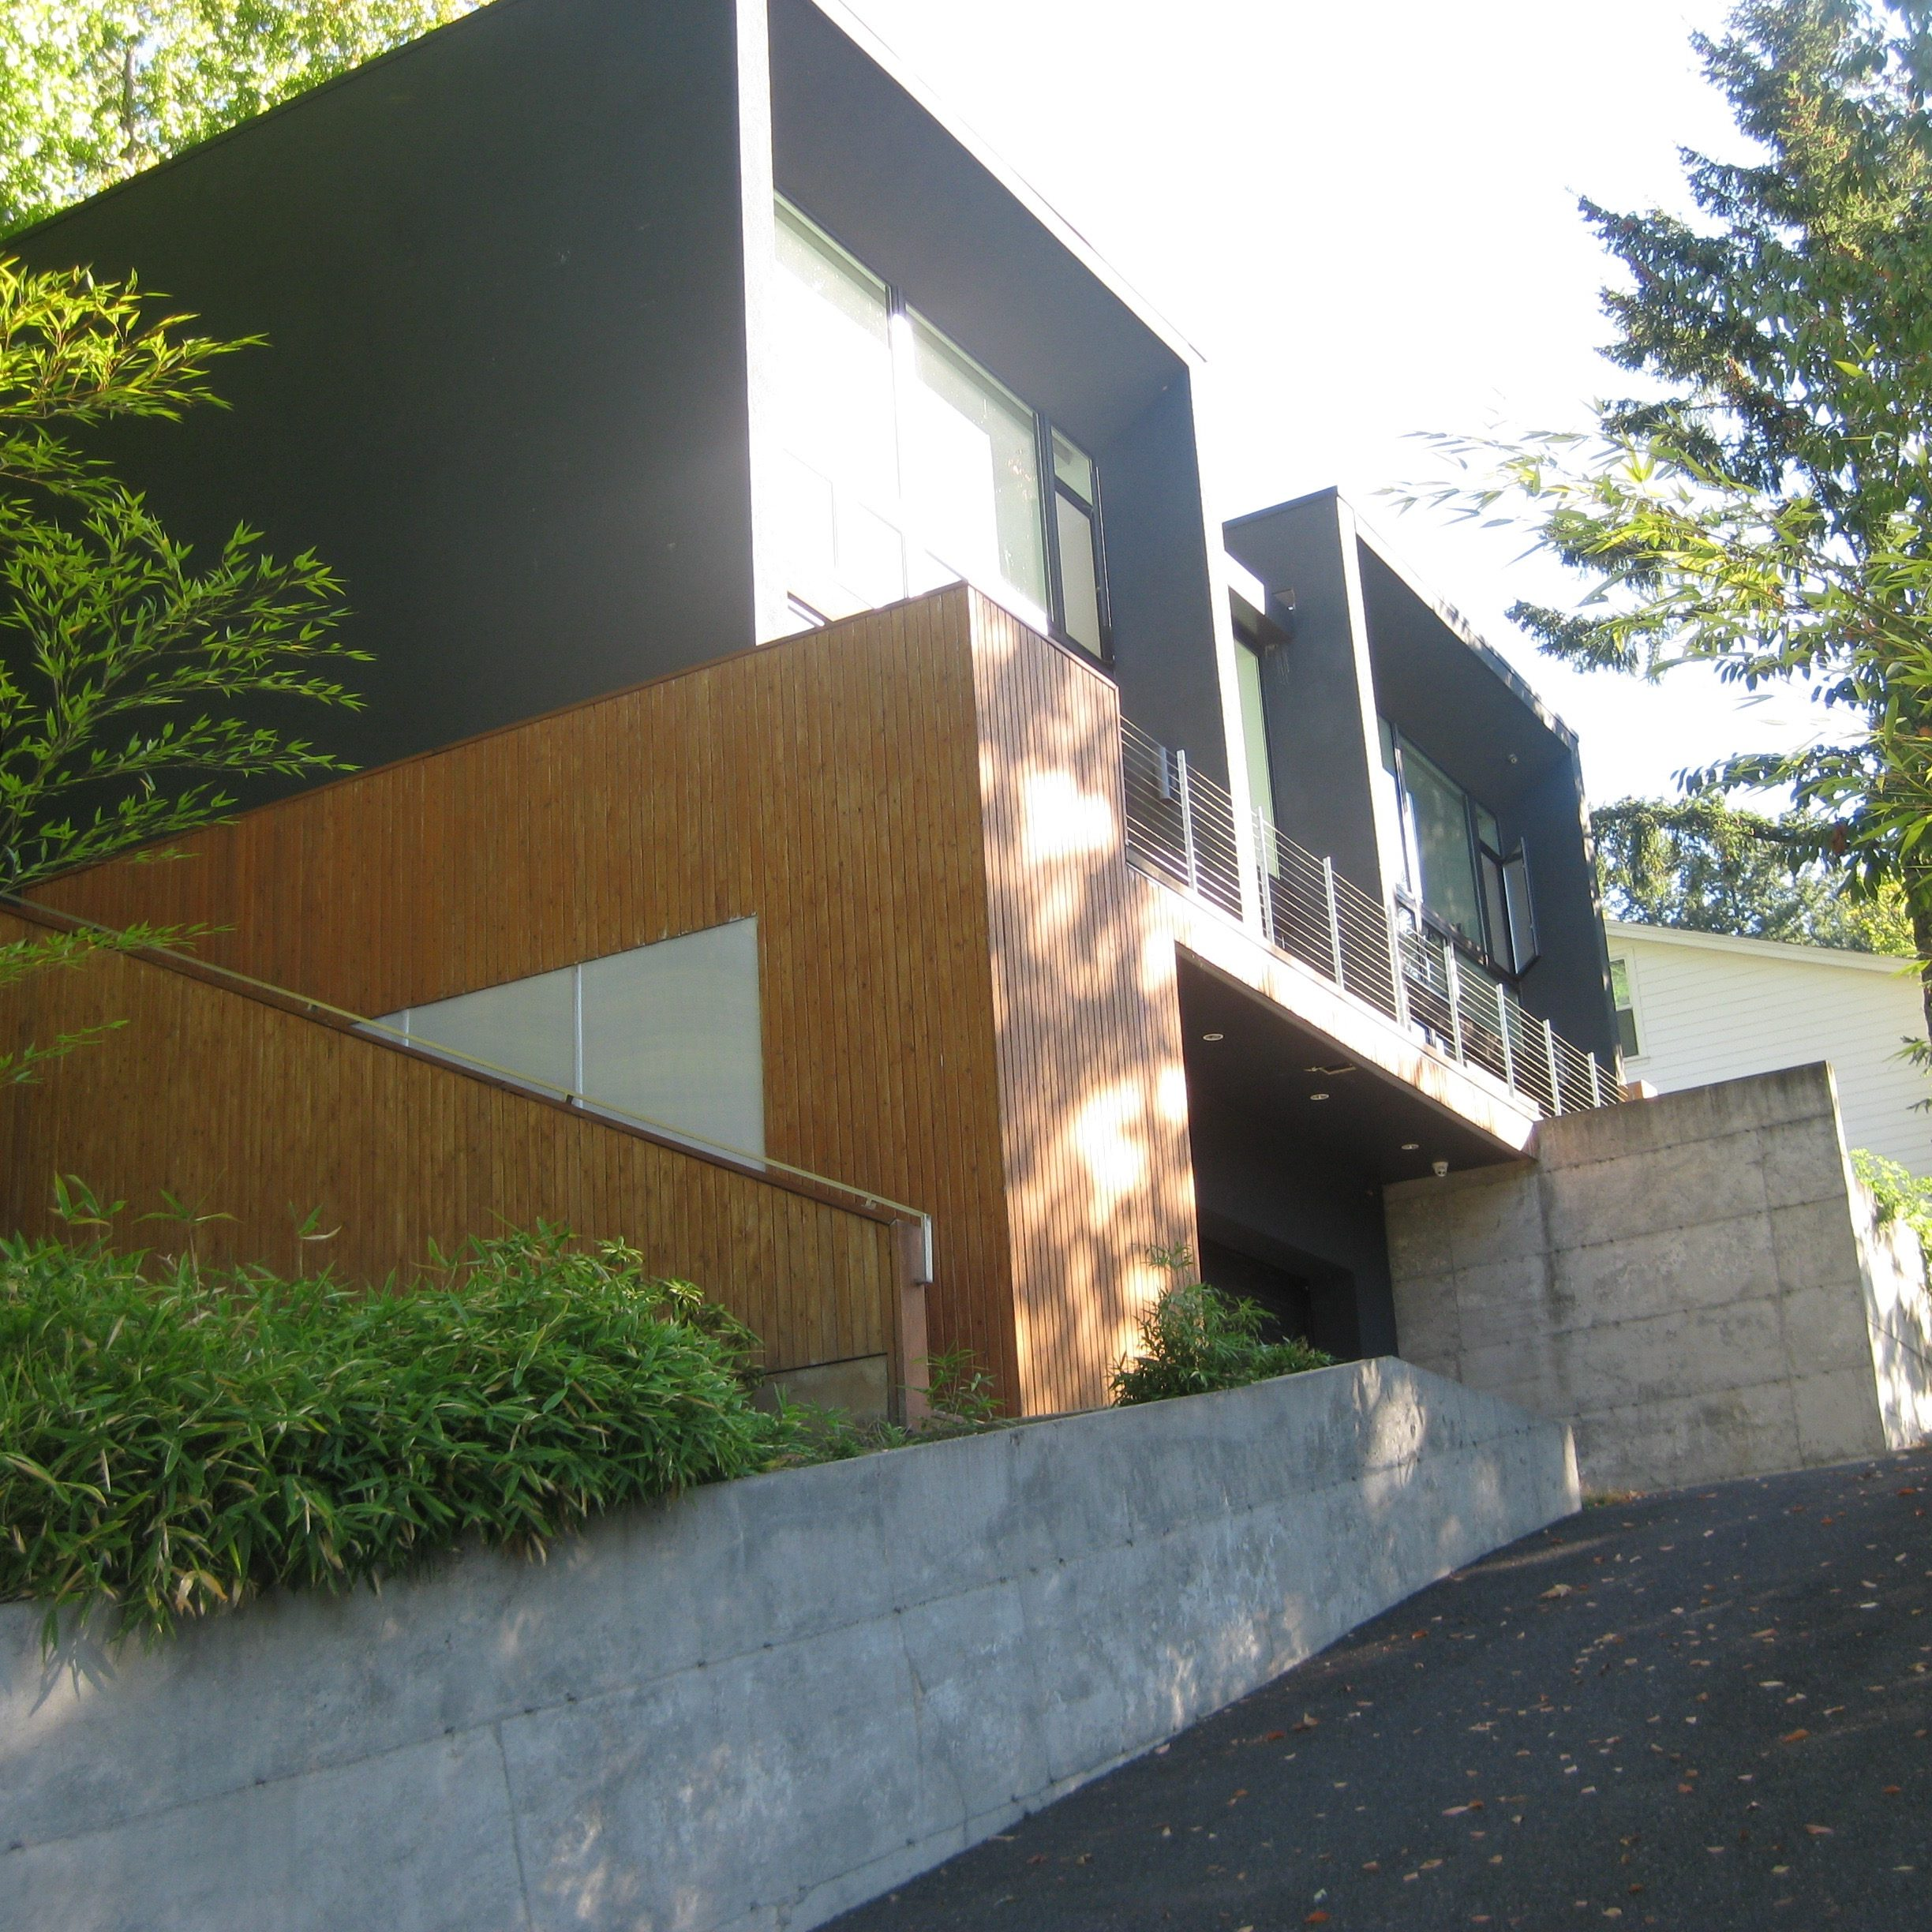 Mid Century Modern, Design and Build, Concrete interior, foundation, Remodel, contemporary home remodel, home renovation, Portland, Oregon, Kaya Construction, Kaya General Contractors, Portland Remodeler